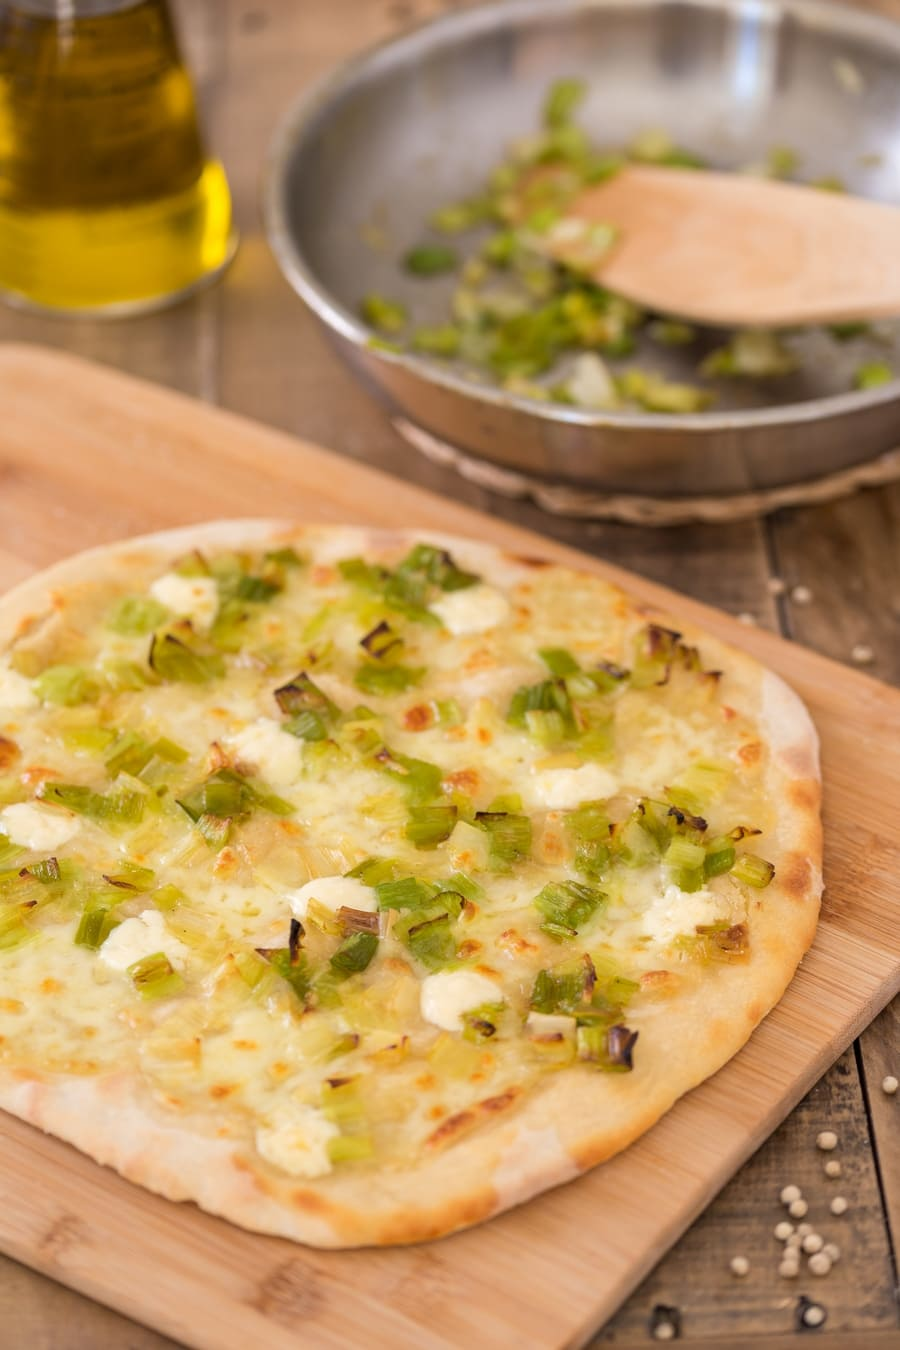 Stone-baked leek mascarpone pizza bianca on a wooden board.